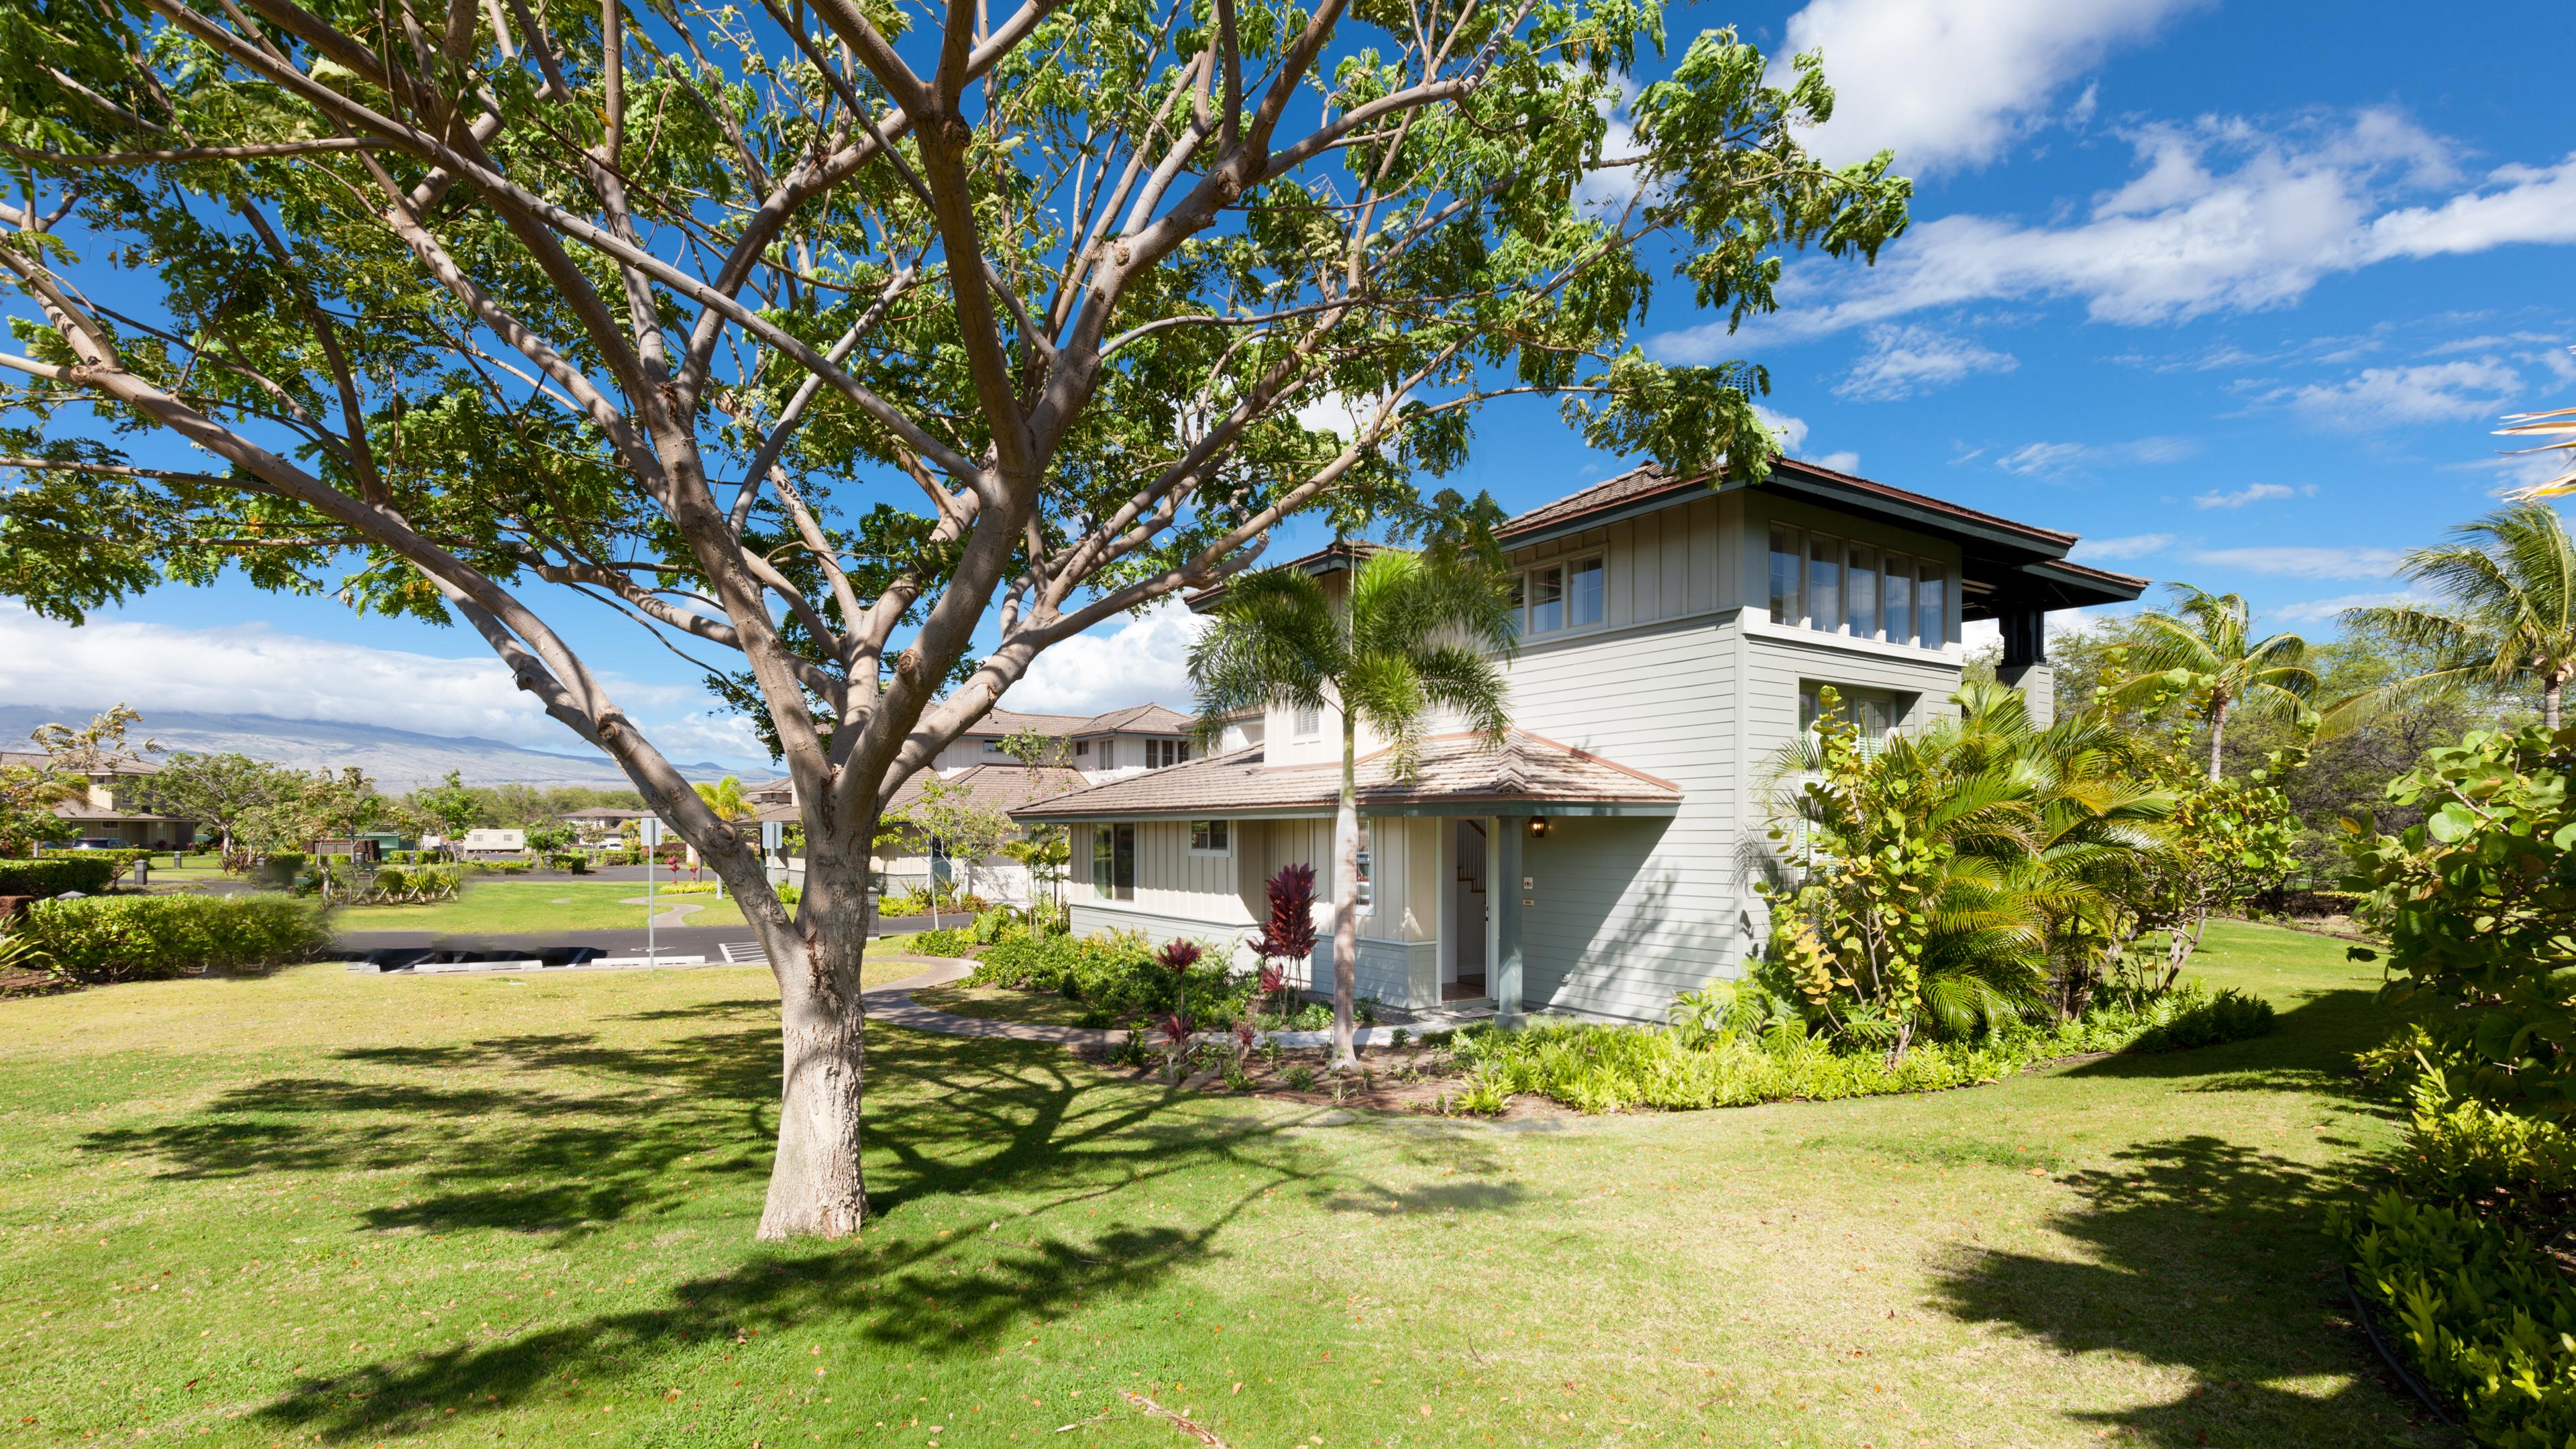 Paradise Found 2BR at Kulalani with Private Beach Club